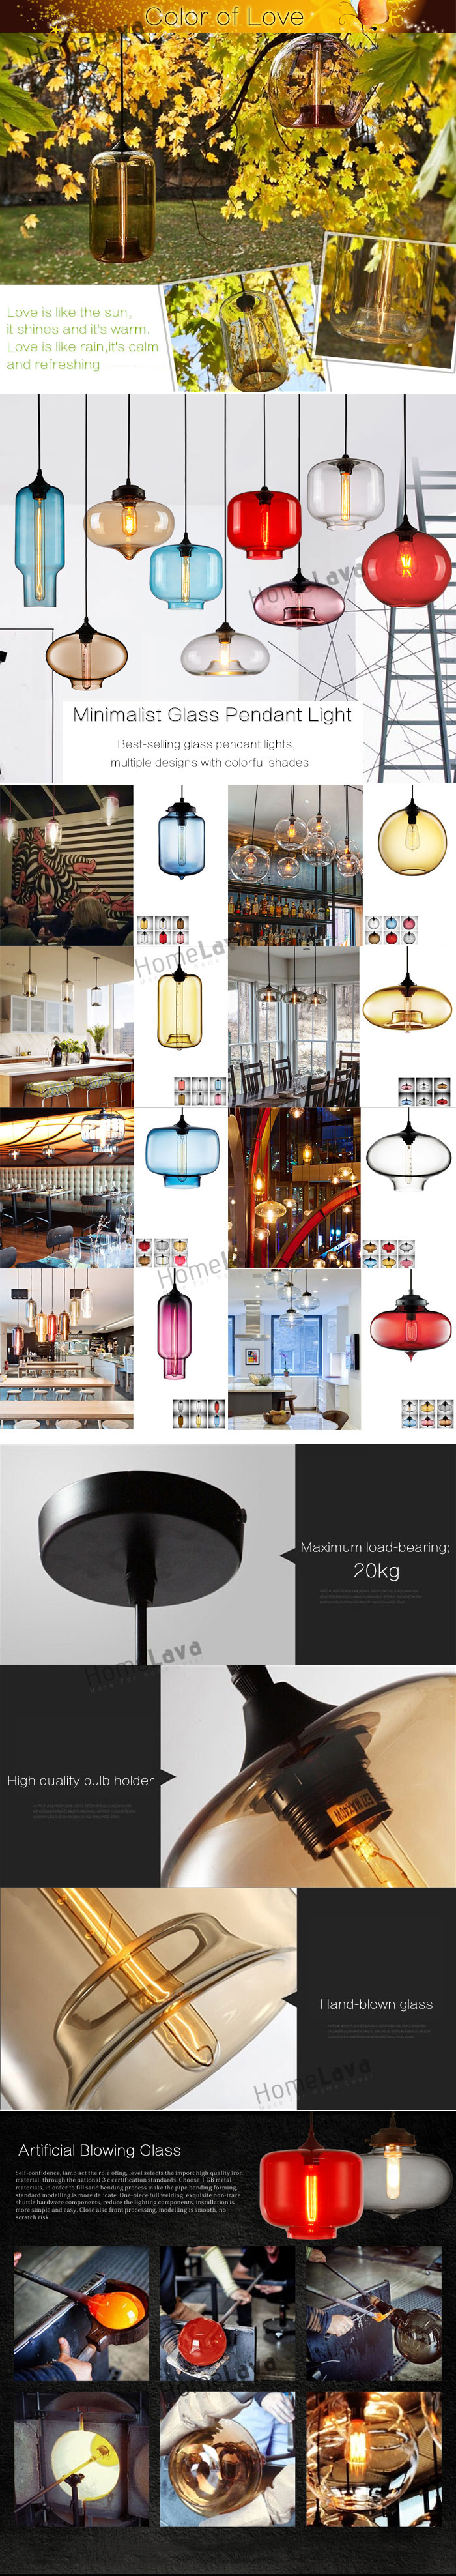 (In Stock) Modern Glass Pendant Light  Hand Blown Colorful Bell Shaded  with 1 Light Amber Color Dining Room Lighting Ideas Living Room Bedroom Lighting(Color of Love)